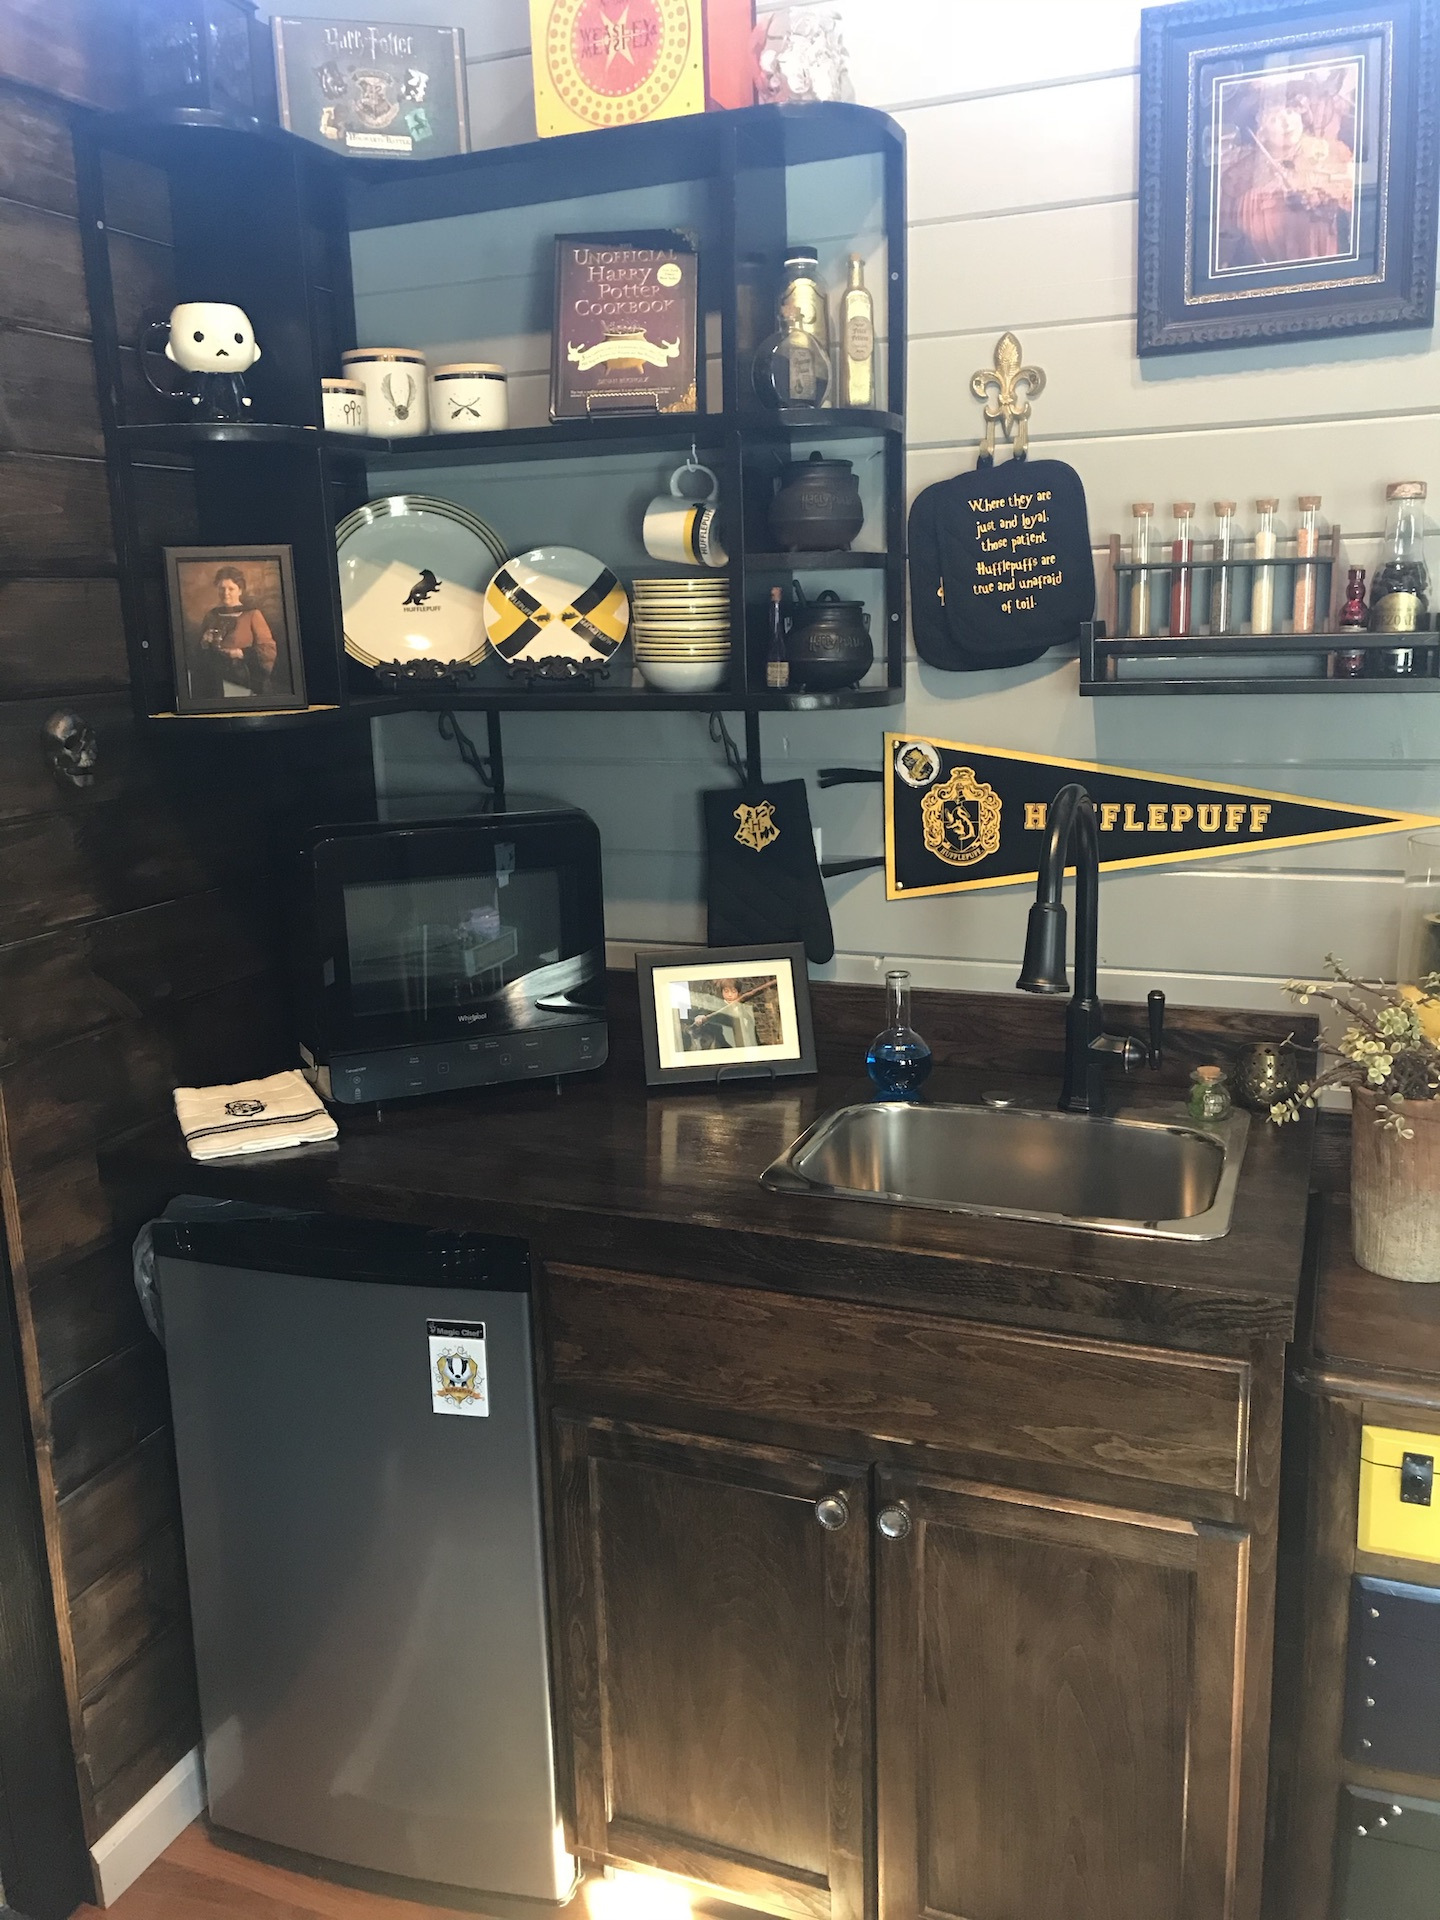 Hufflepuff Kitchen Shelf Unit